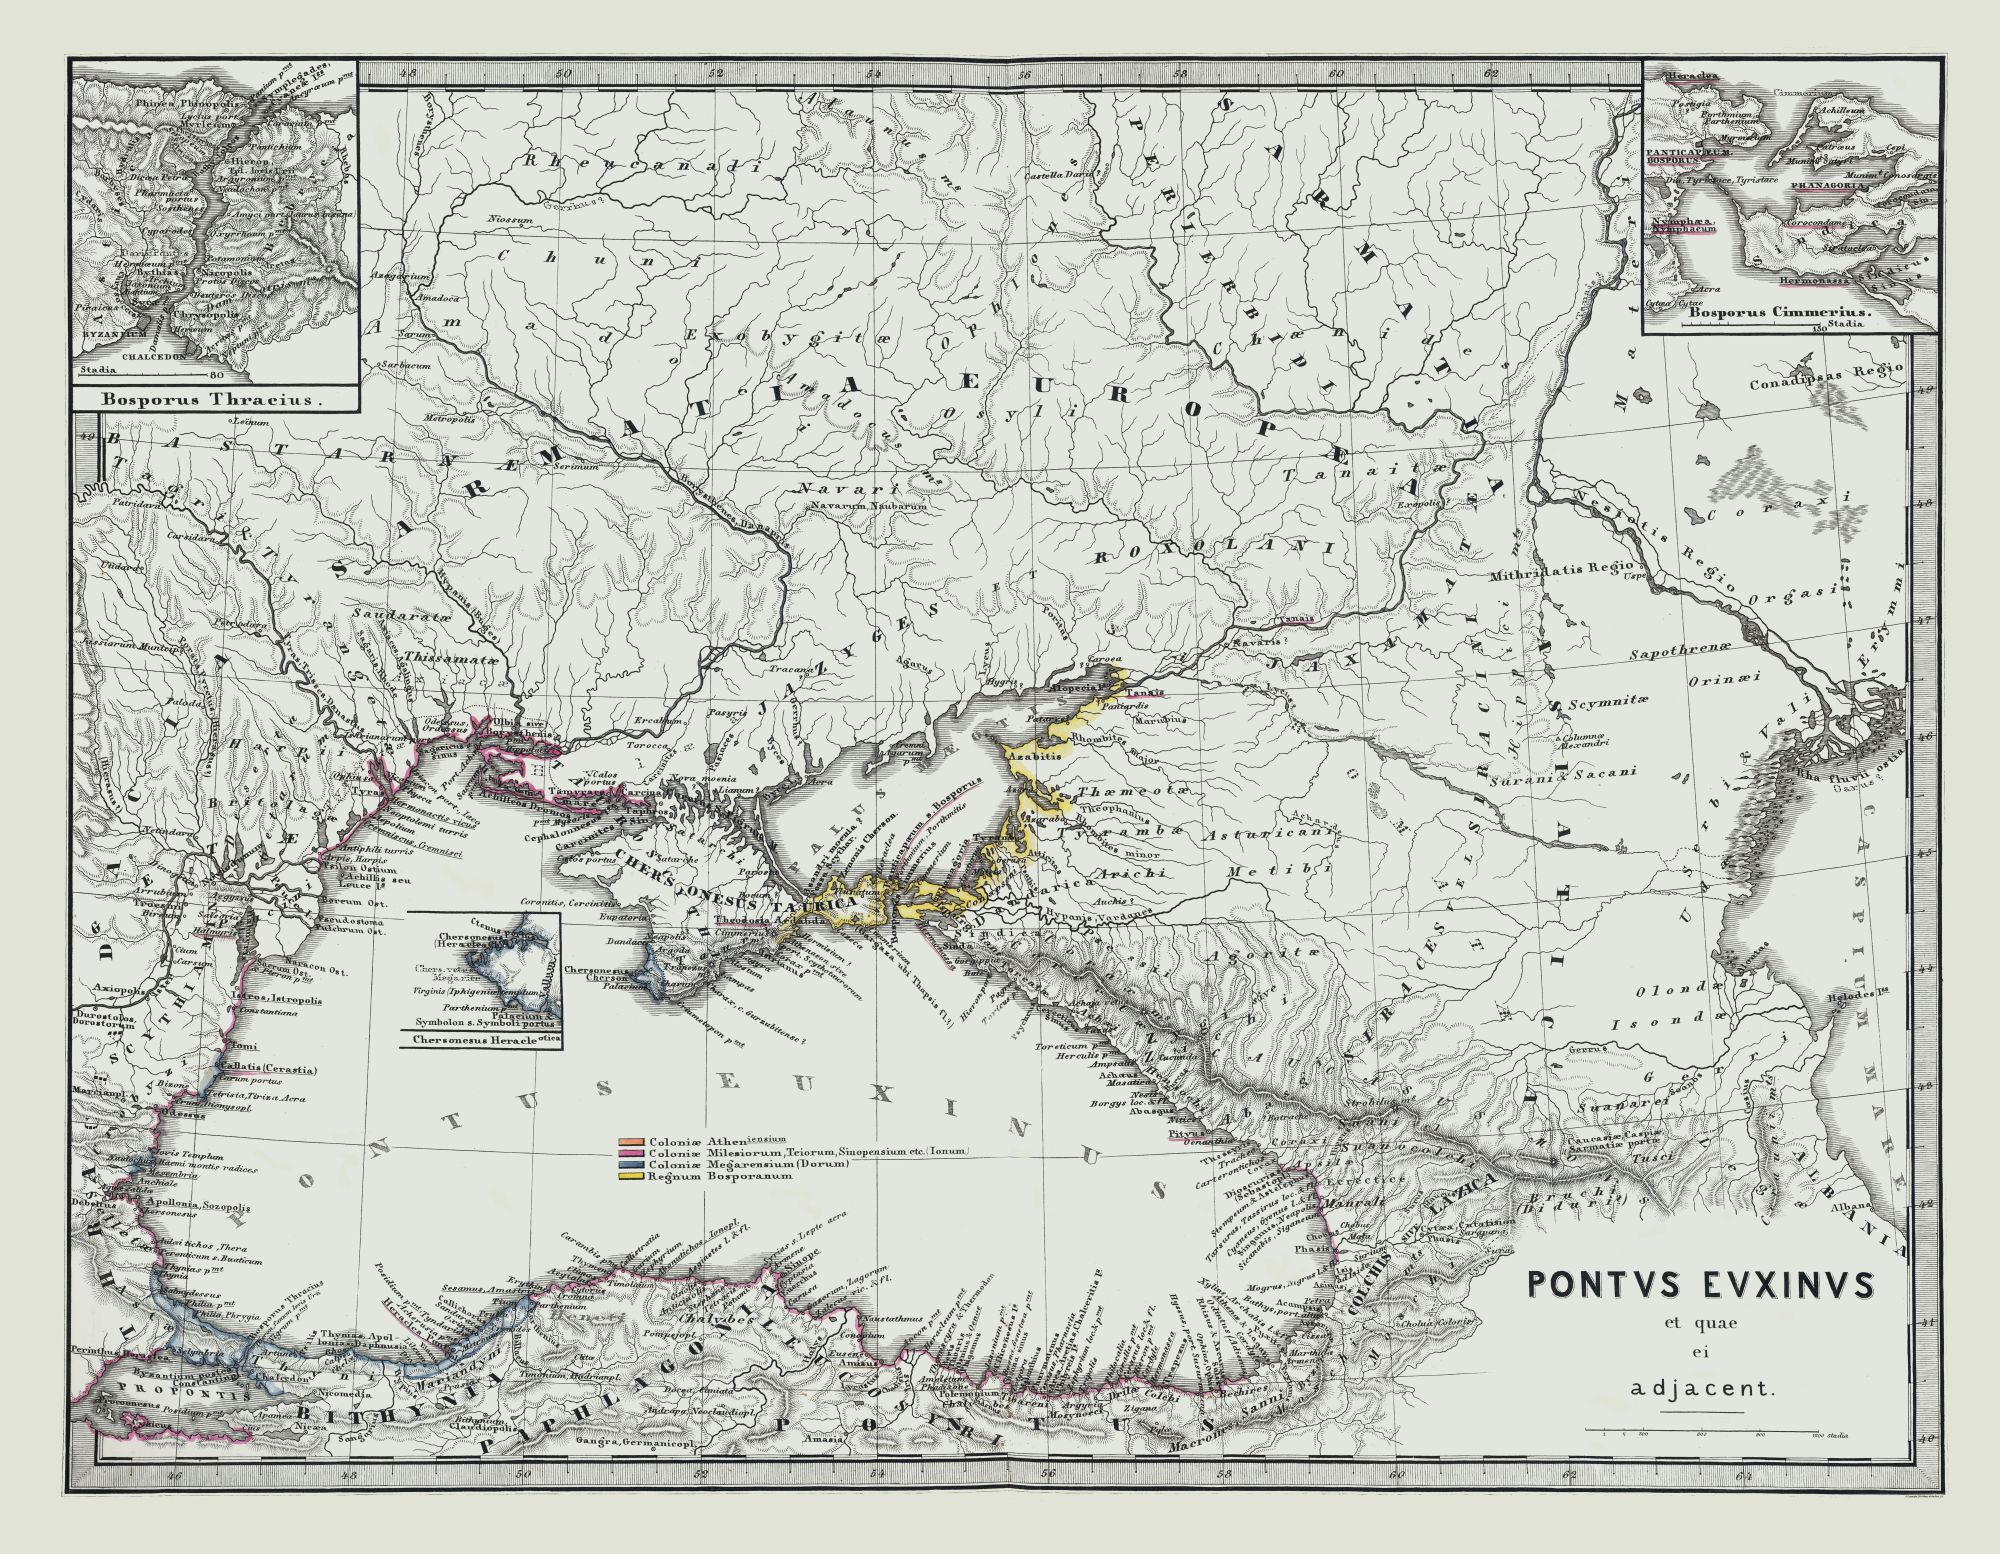 Old International Maps | Ancient Middle East - Spruner 1865 - 29.61 x 23